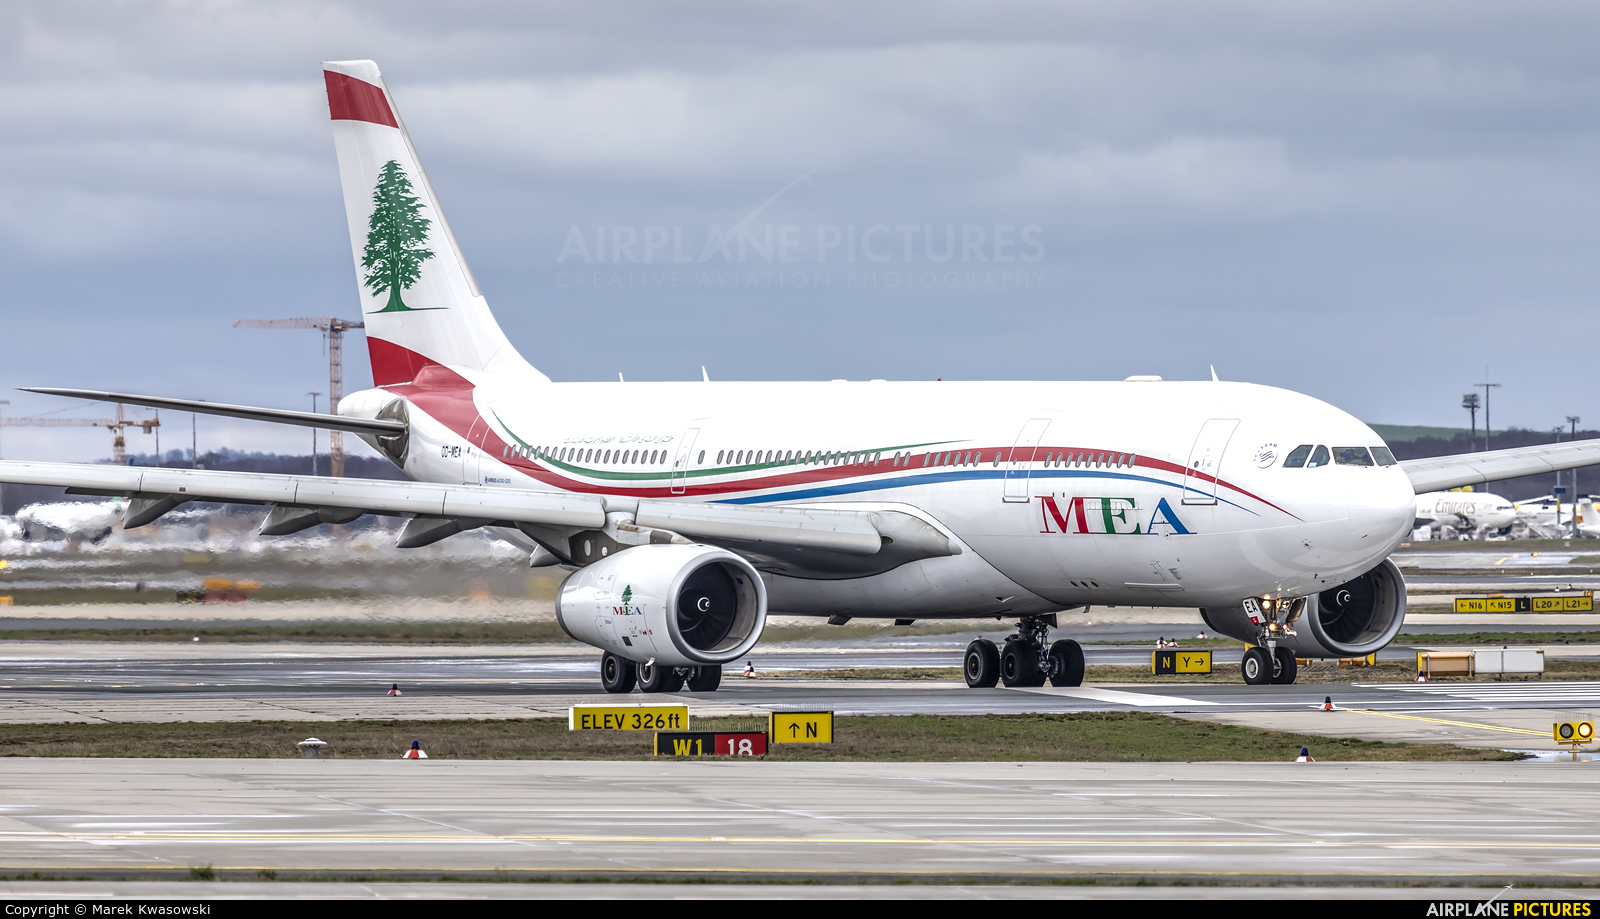 MEA - Middle East Airlines OD-MEA aircraft at Frankfurt